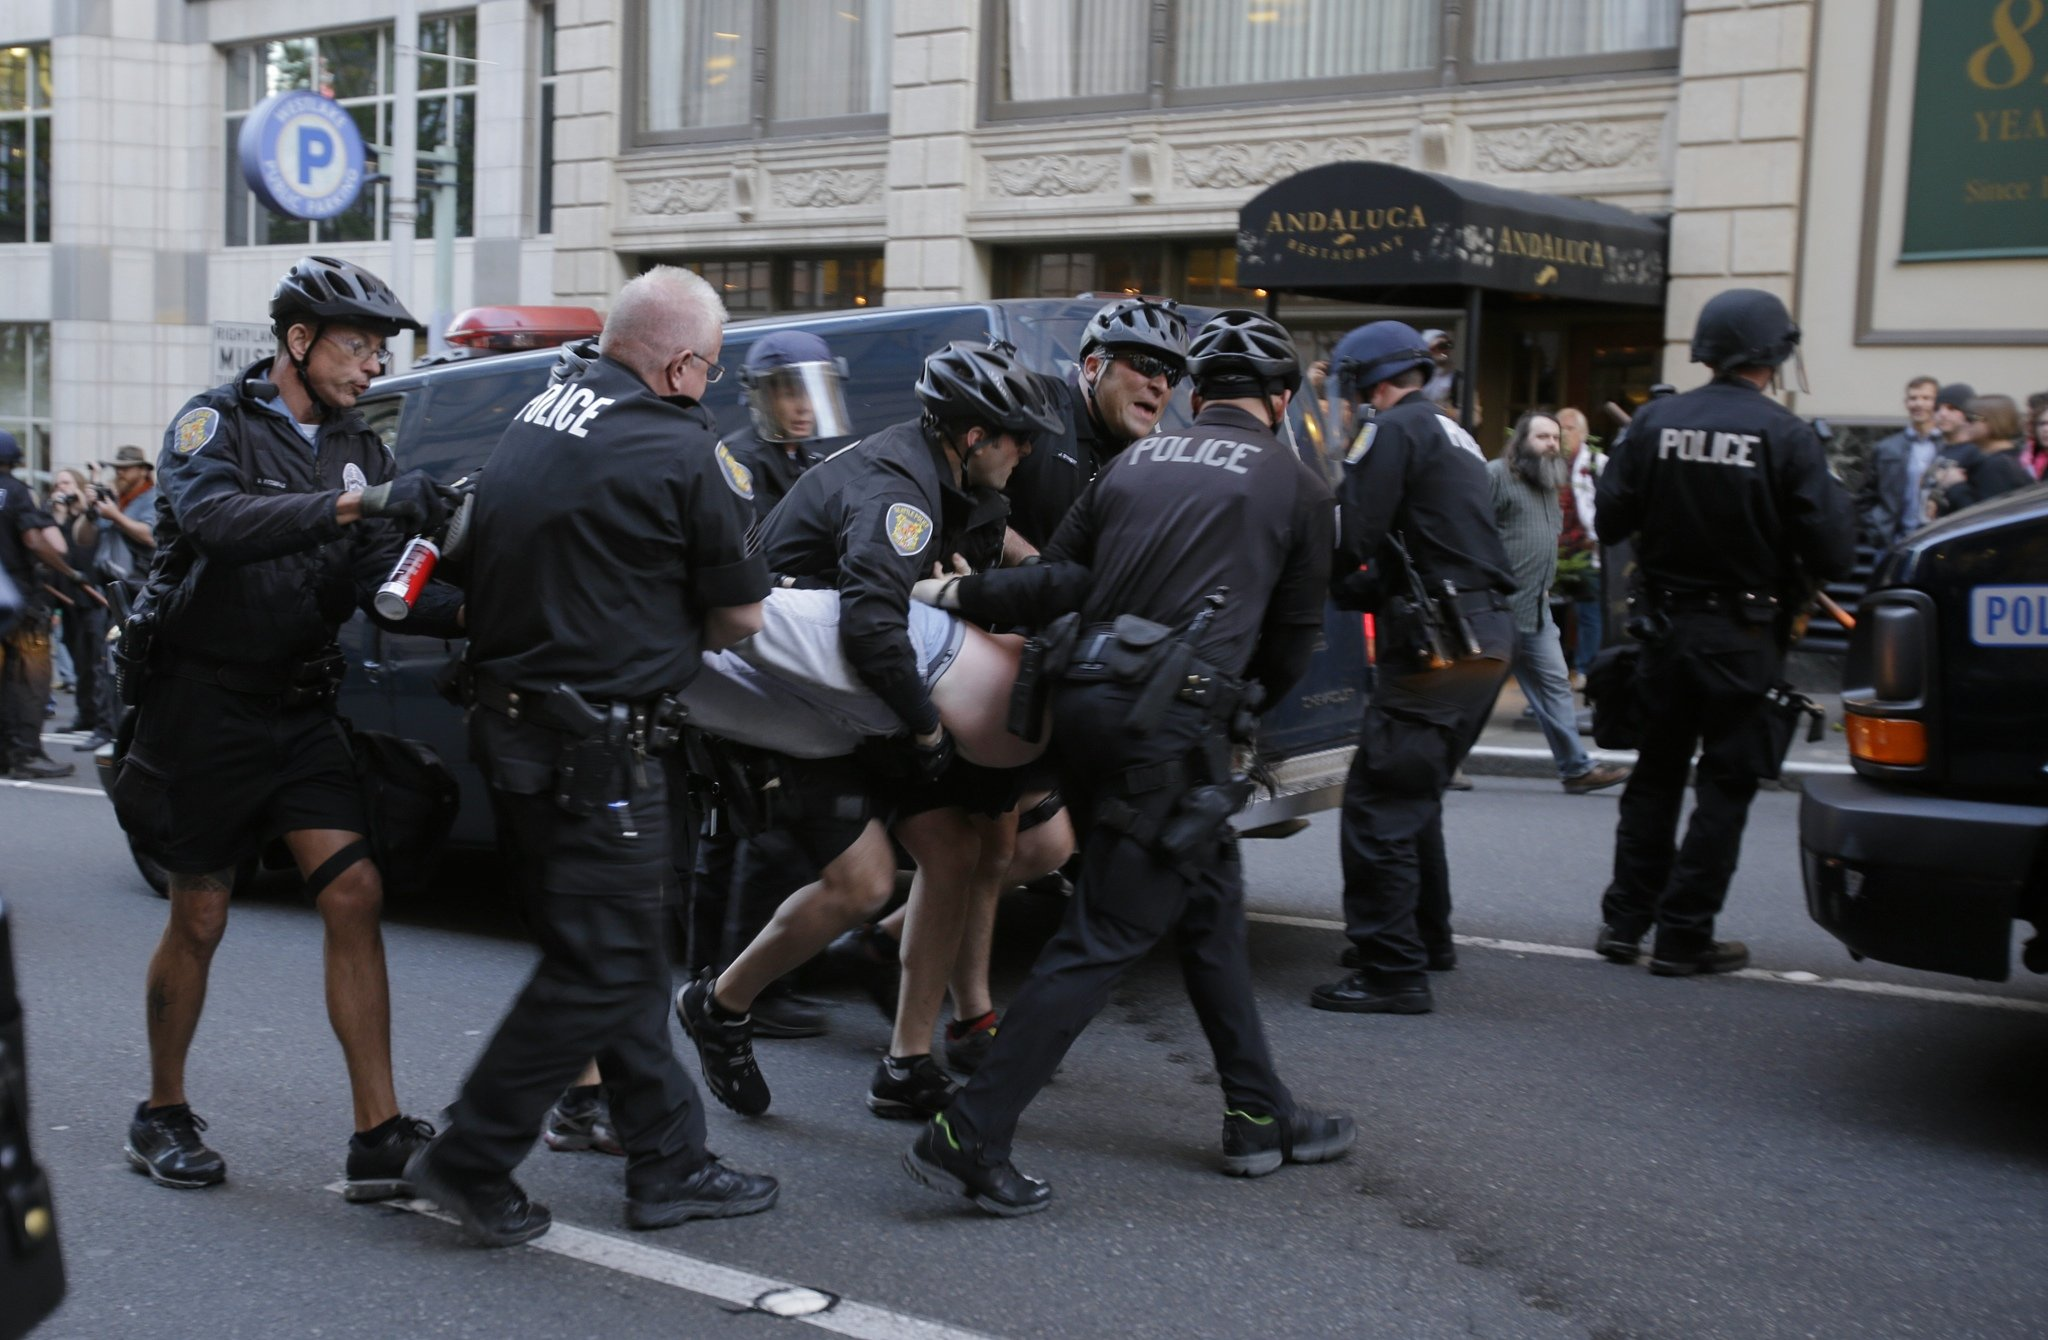 050113 - SEATTLE, WA - Police make an arrest in Times Square.